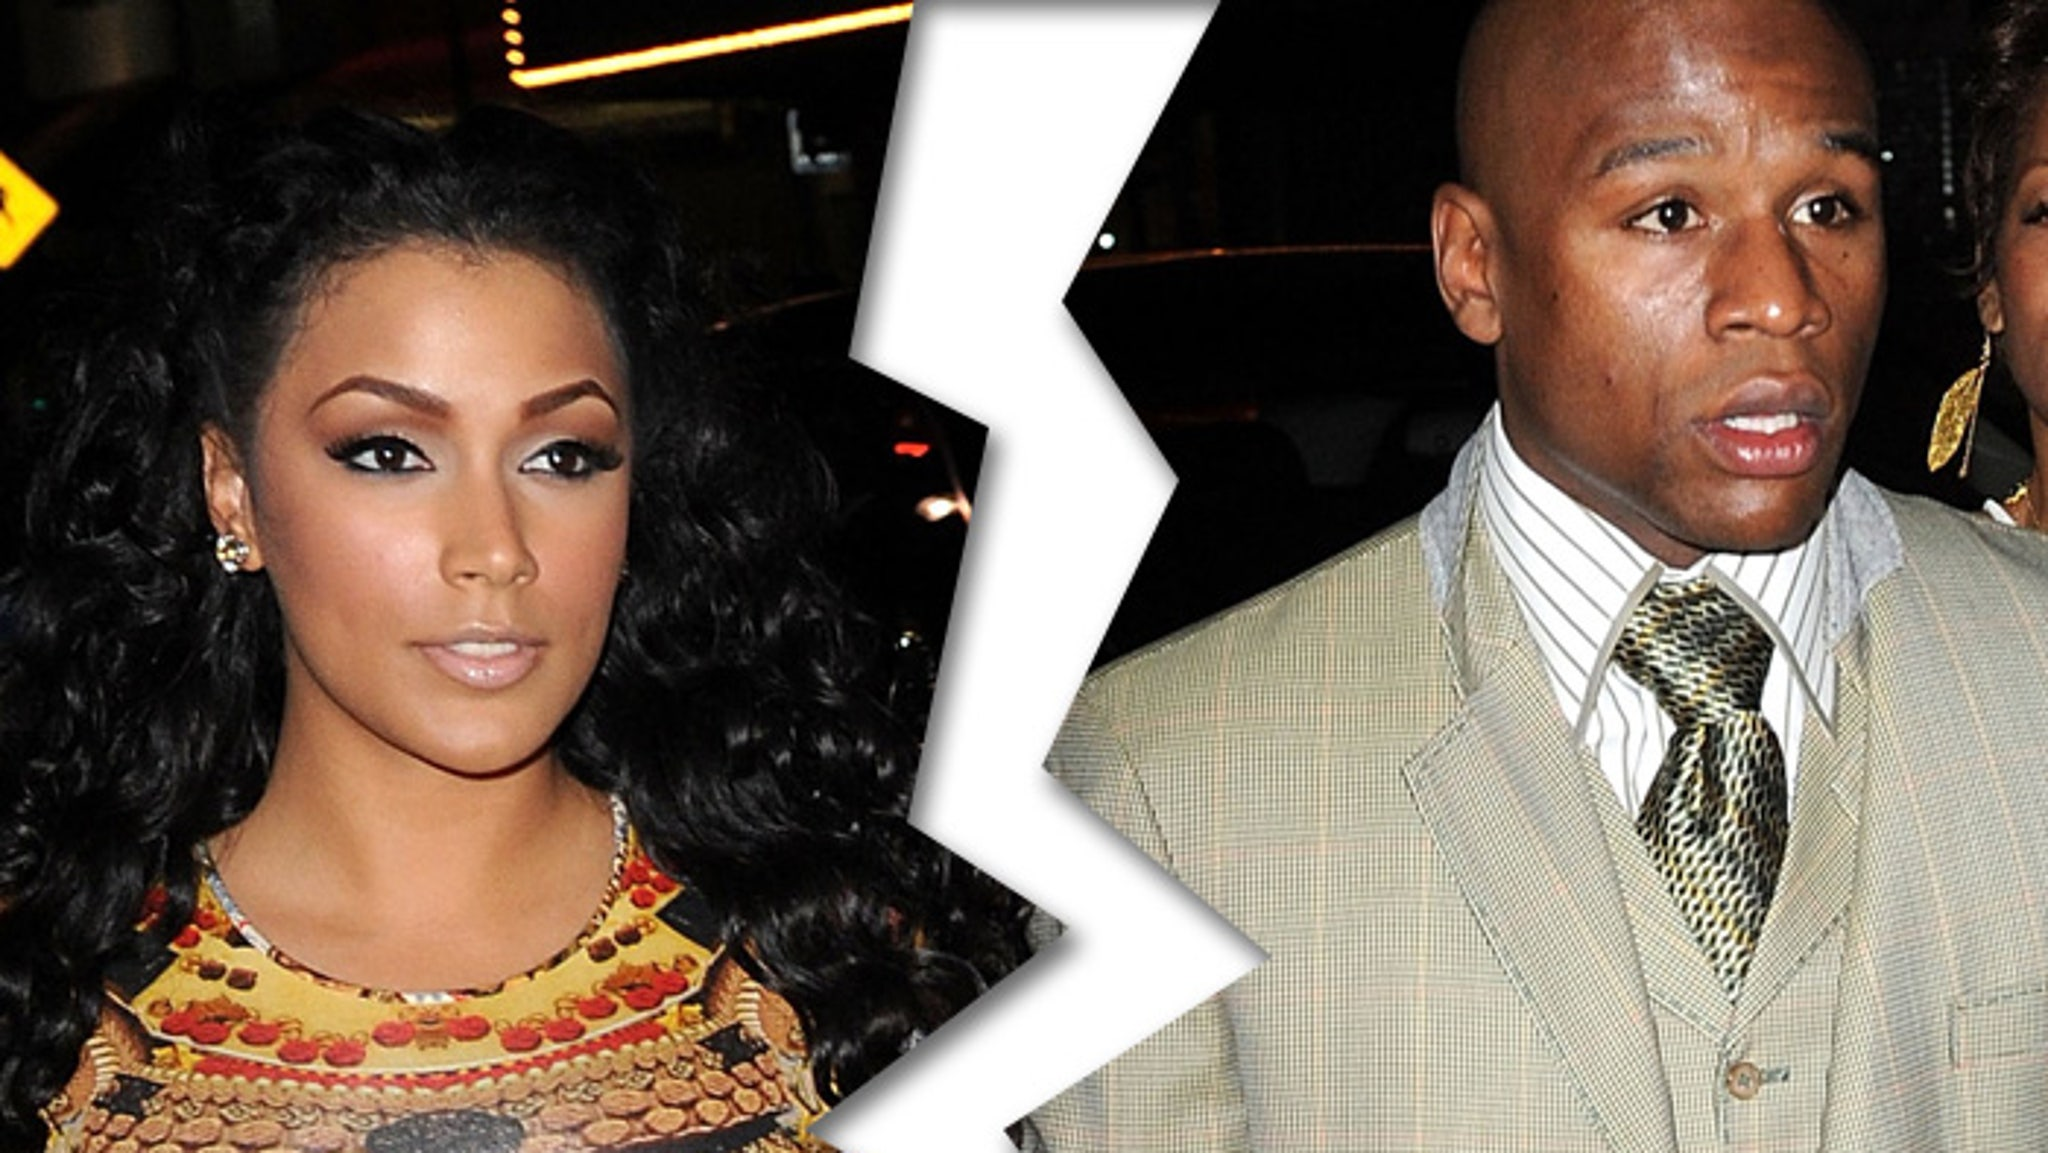 Nelly Ex Ashanti Could Be Deposed In Shantel Jackson's Assault Case Against Floyd Mayweather Eurweb